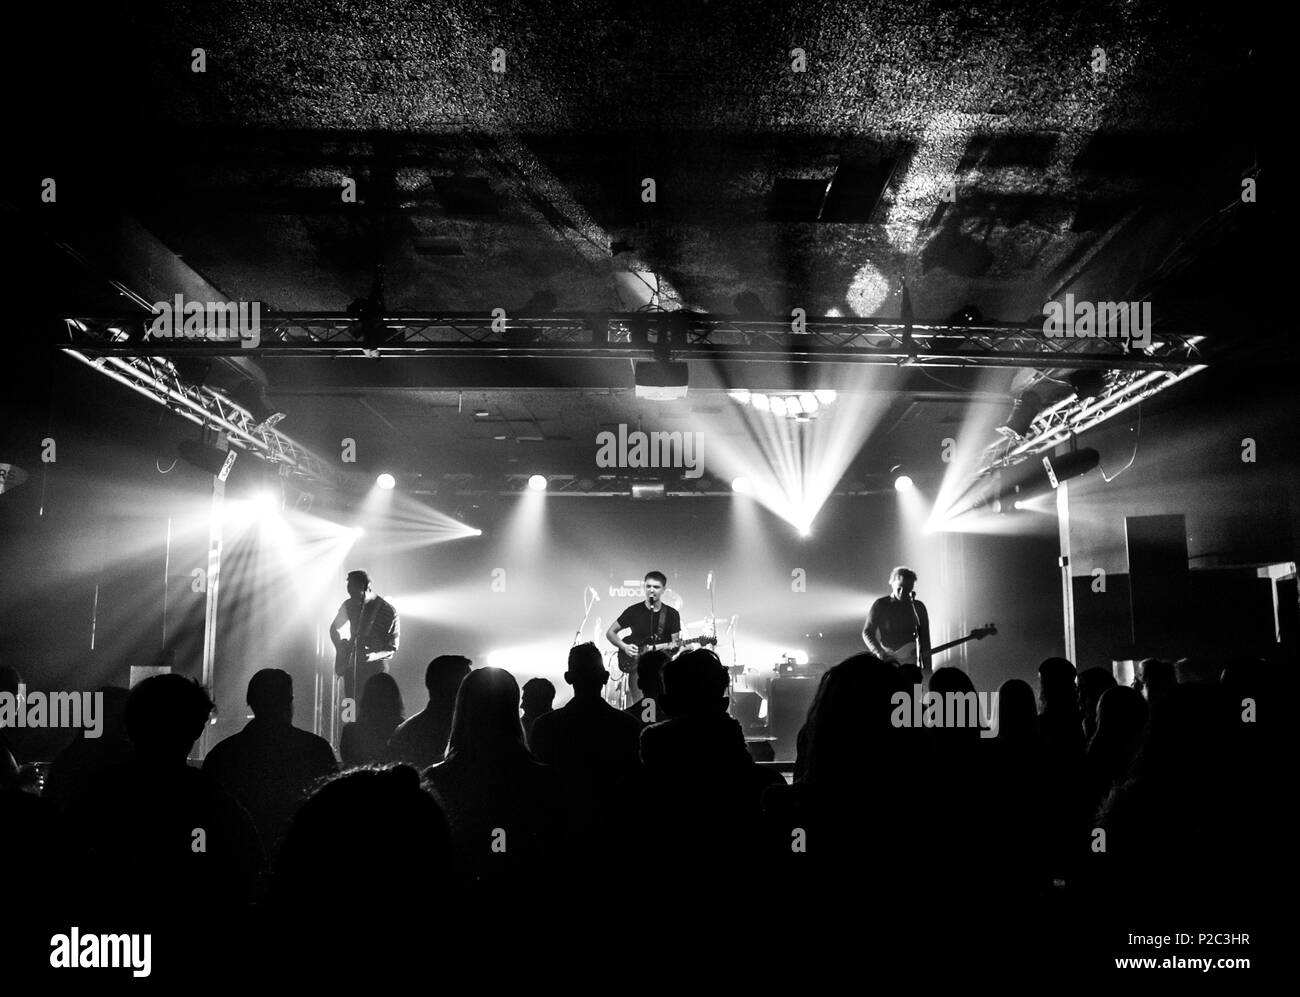 https www alamy com submariner band live at wedgewood rooms as part of icebreaker festival 2018 including the crowd and stage lighting in black and white image208020003 html